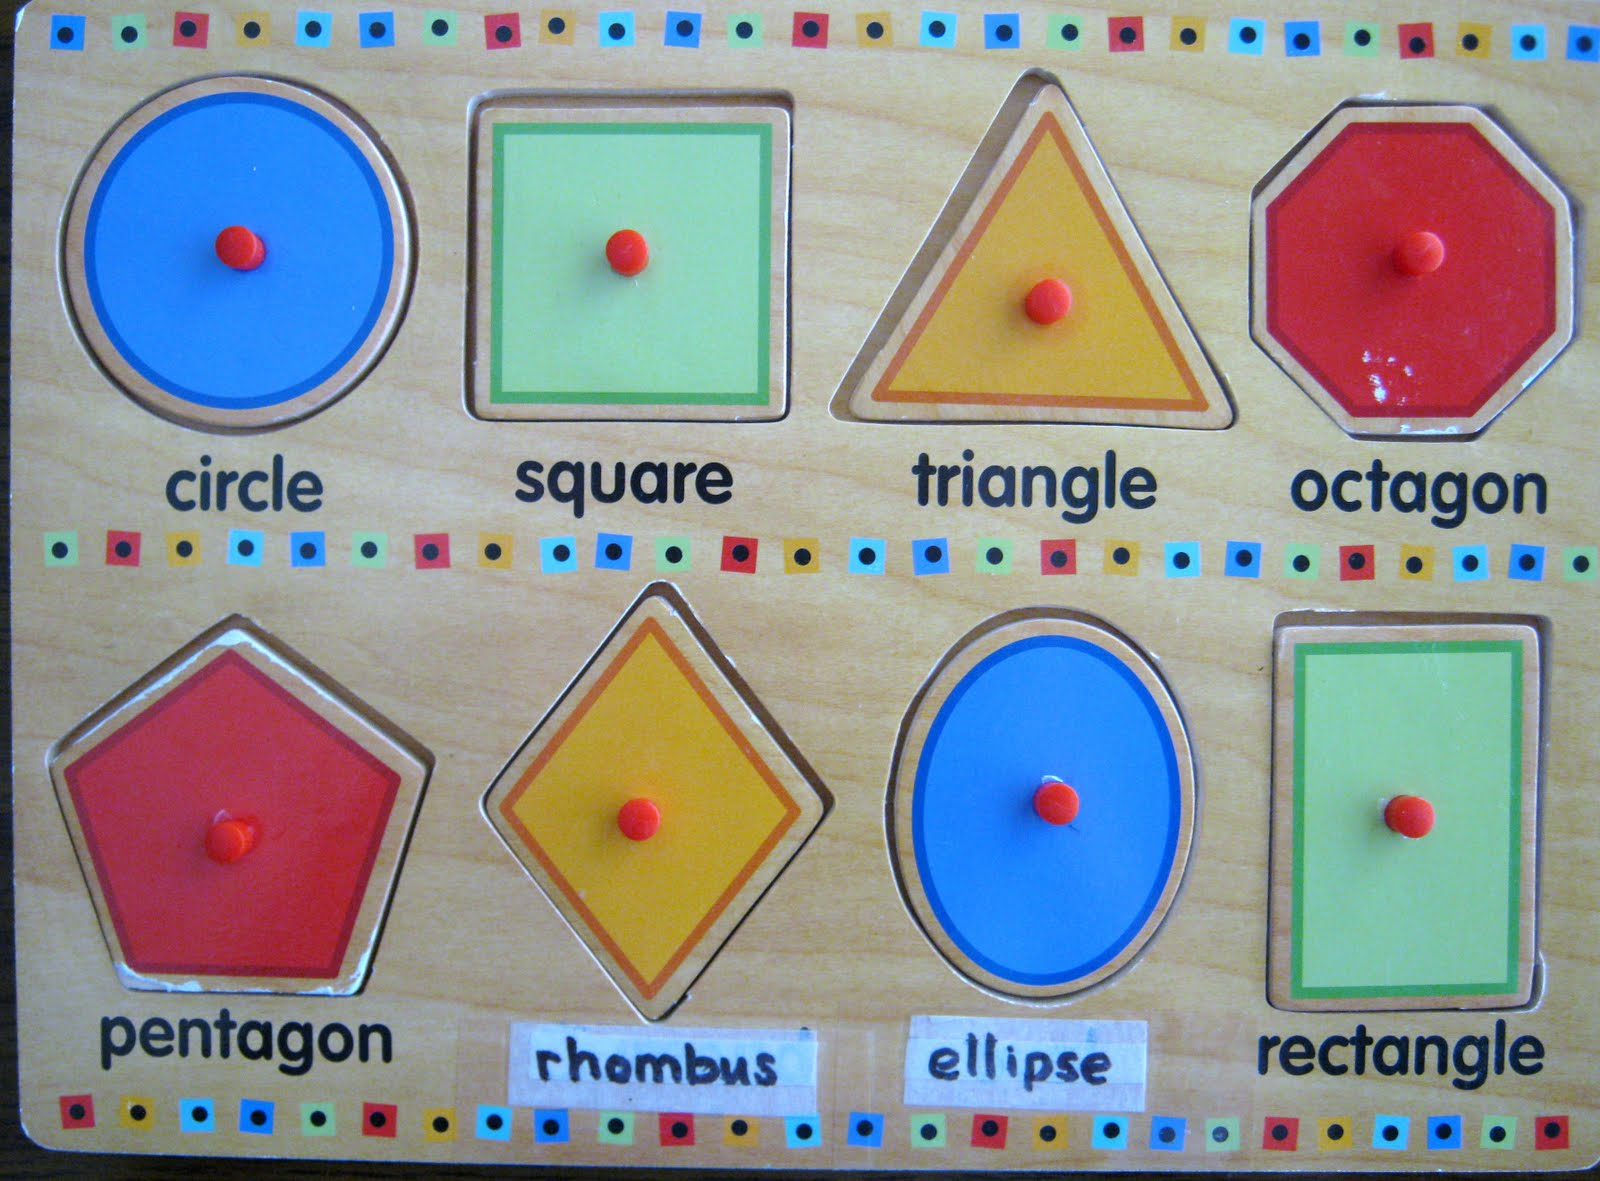 Absorb This Montessori: Ellipse & Rhombus Masquerading as ...